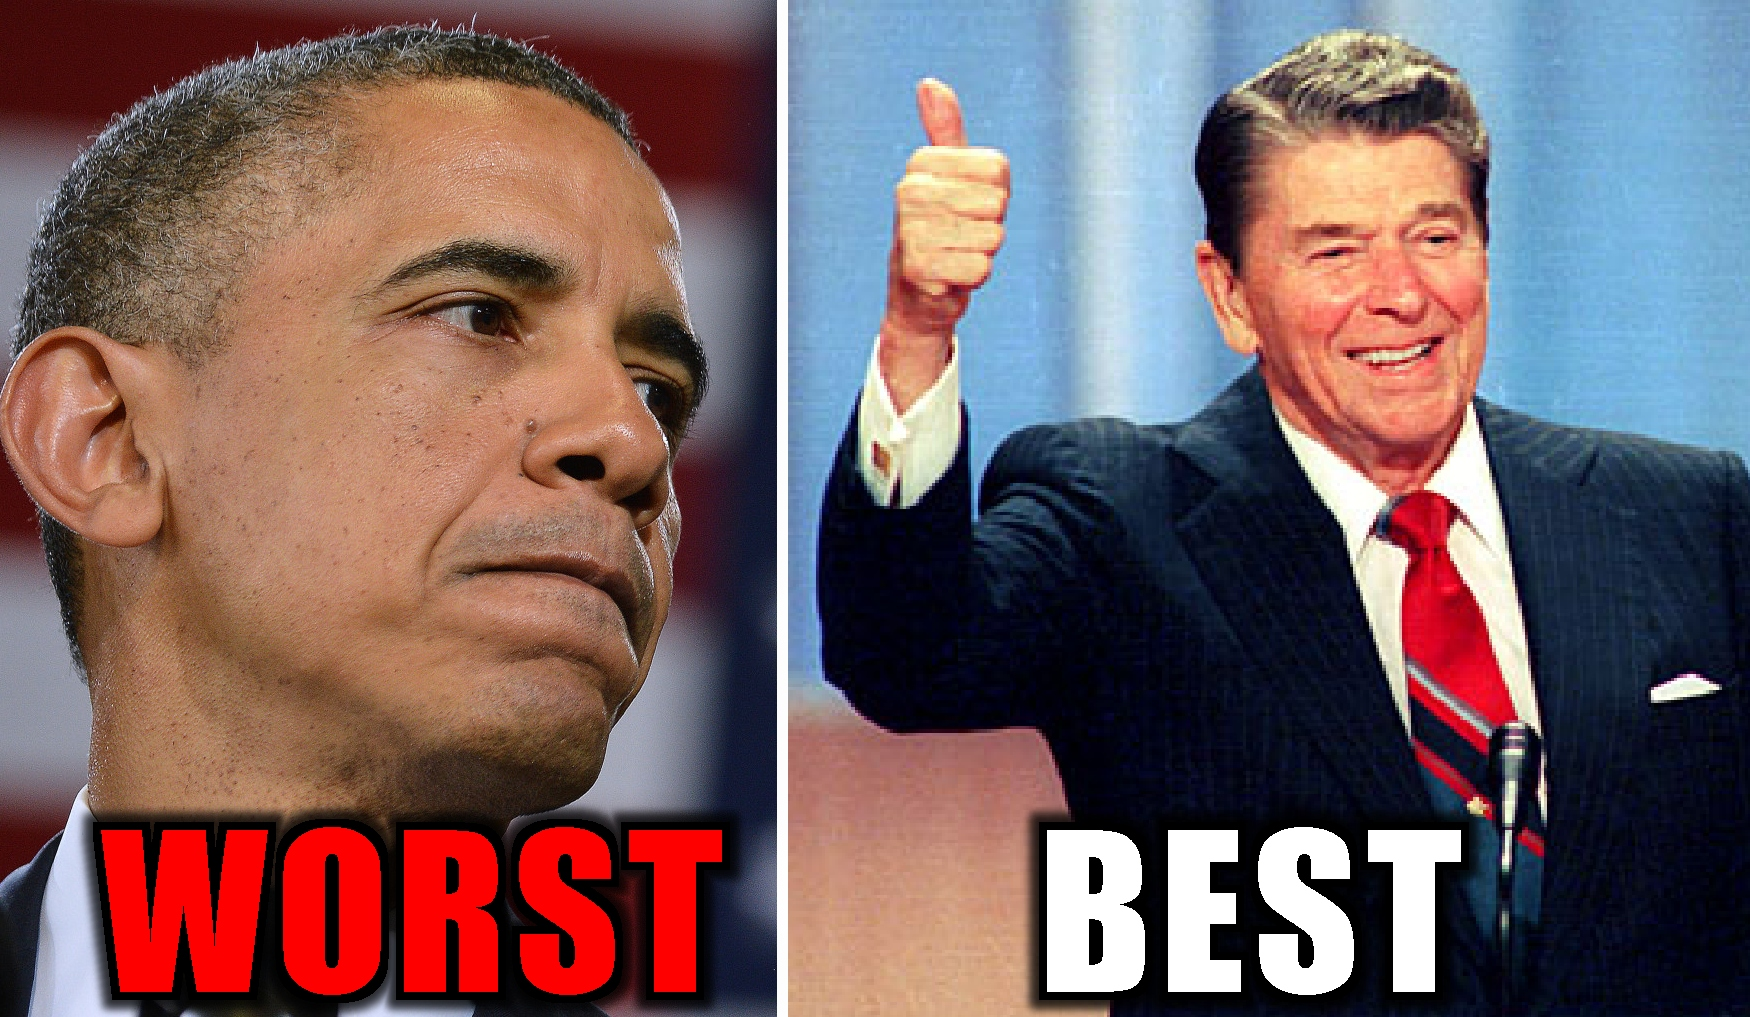 best worst president-OBAMA-REAGAN